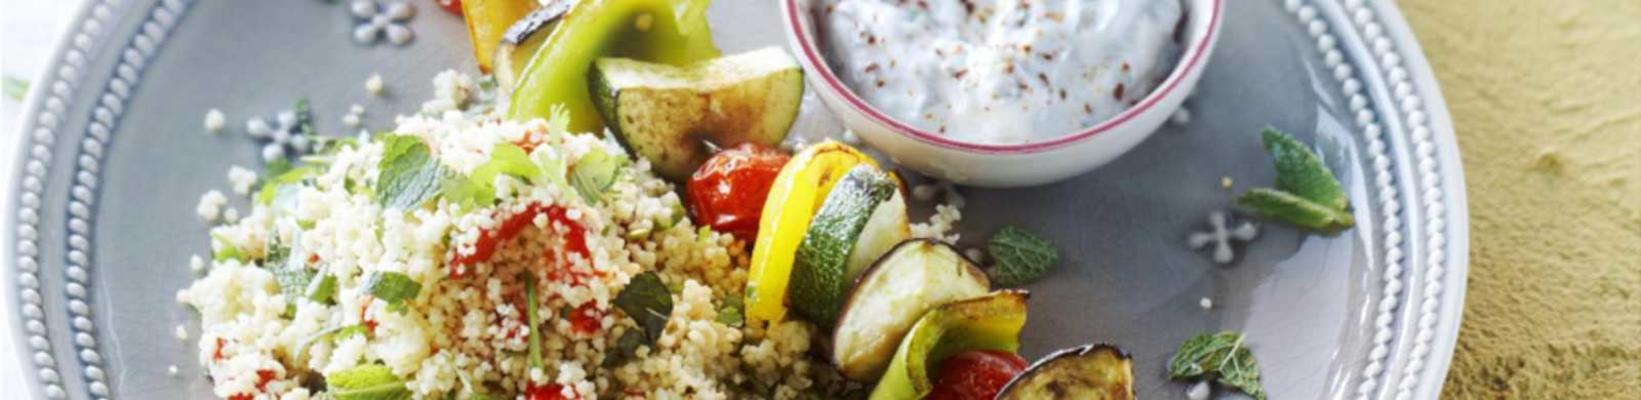 vegetable kebab with couscous salad